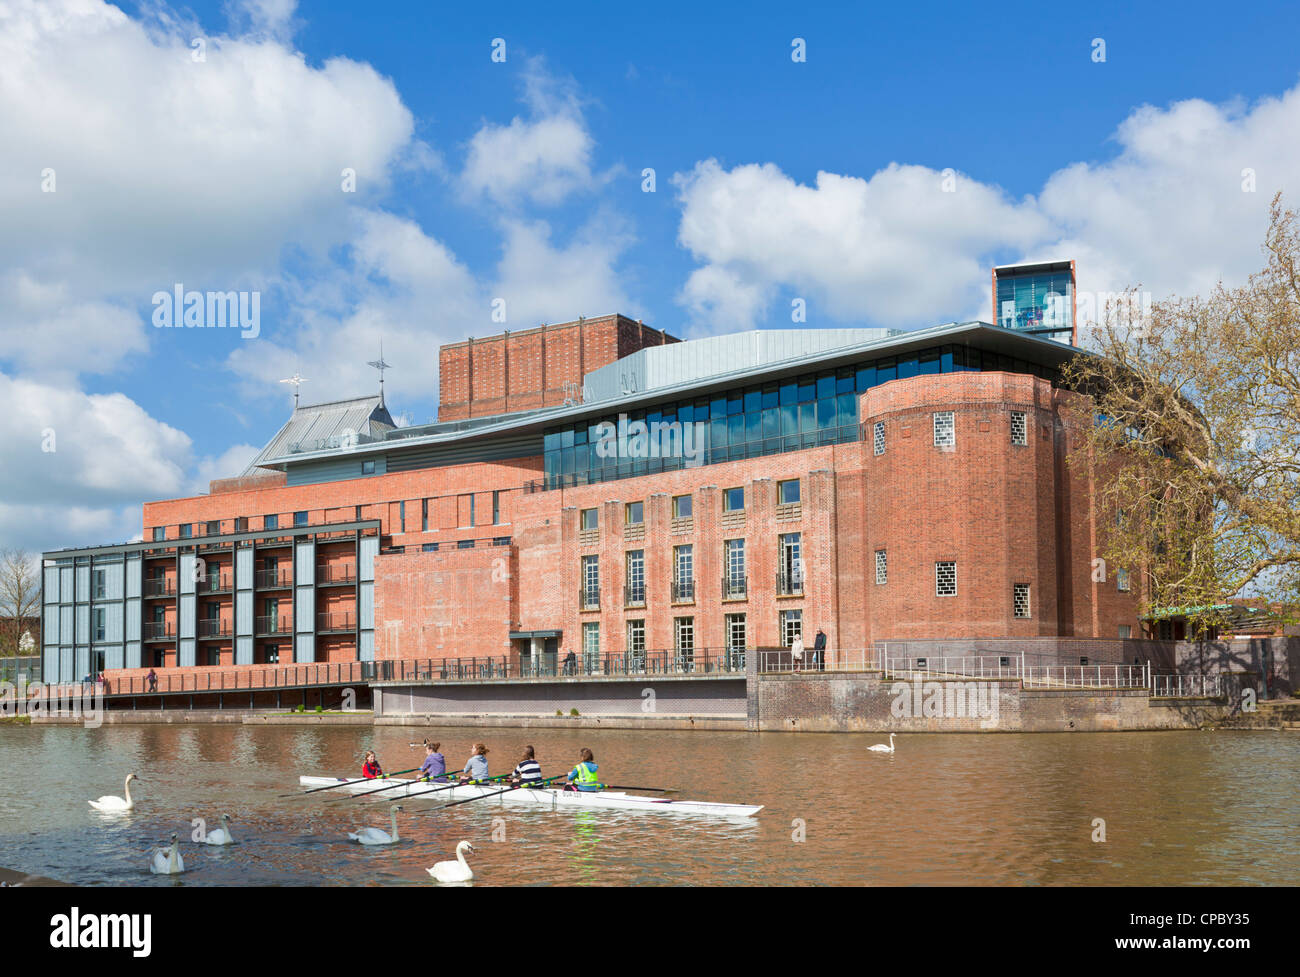 Rowers on the river avon in front of Royal Shakespeare company theatre stratford upon avon Warwickshire England - Stock Image